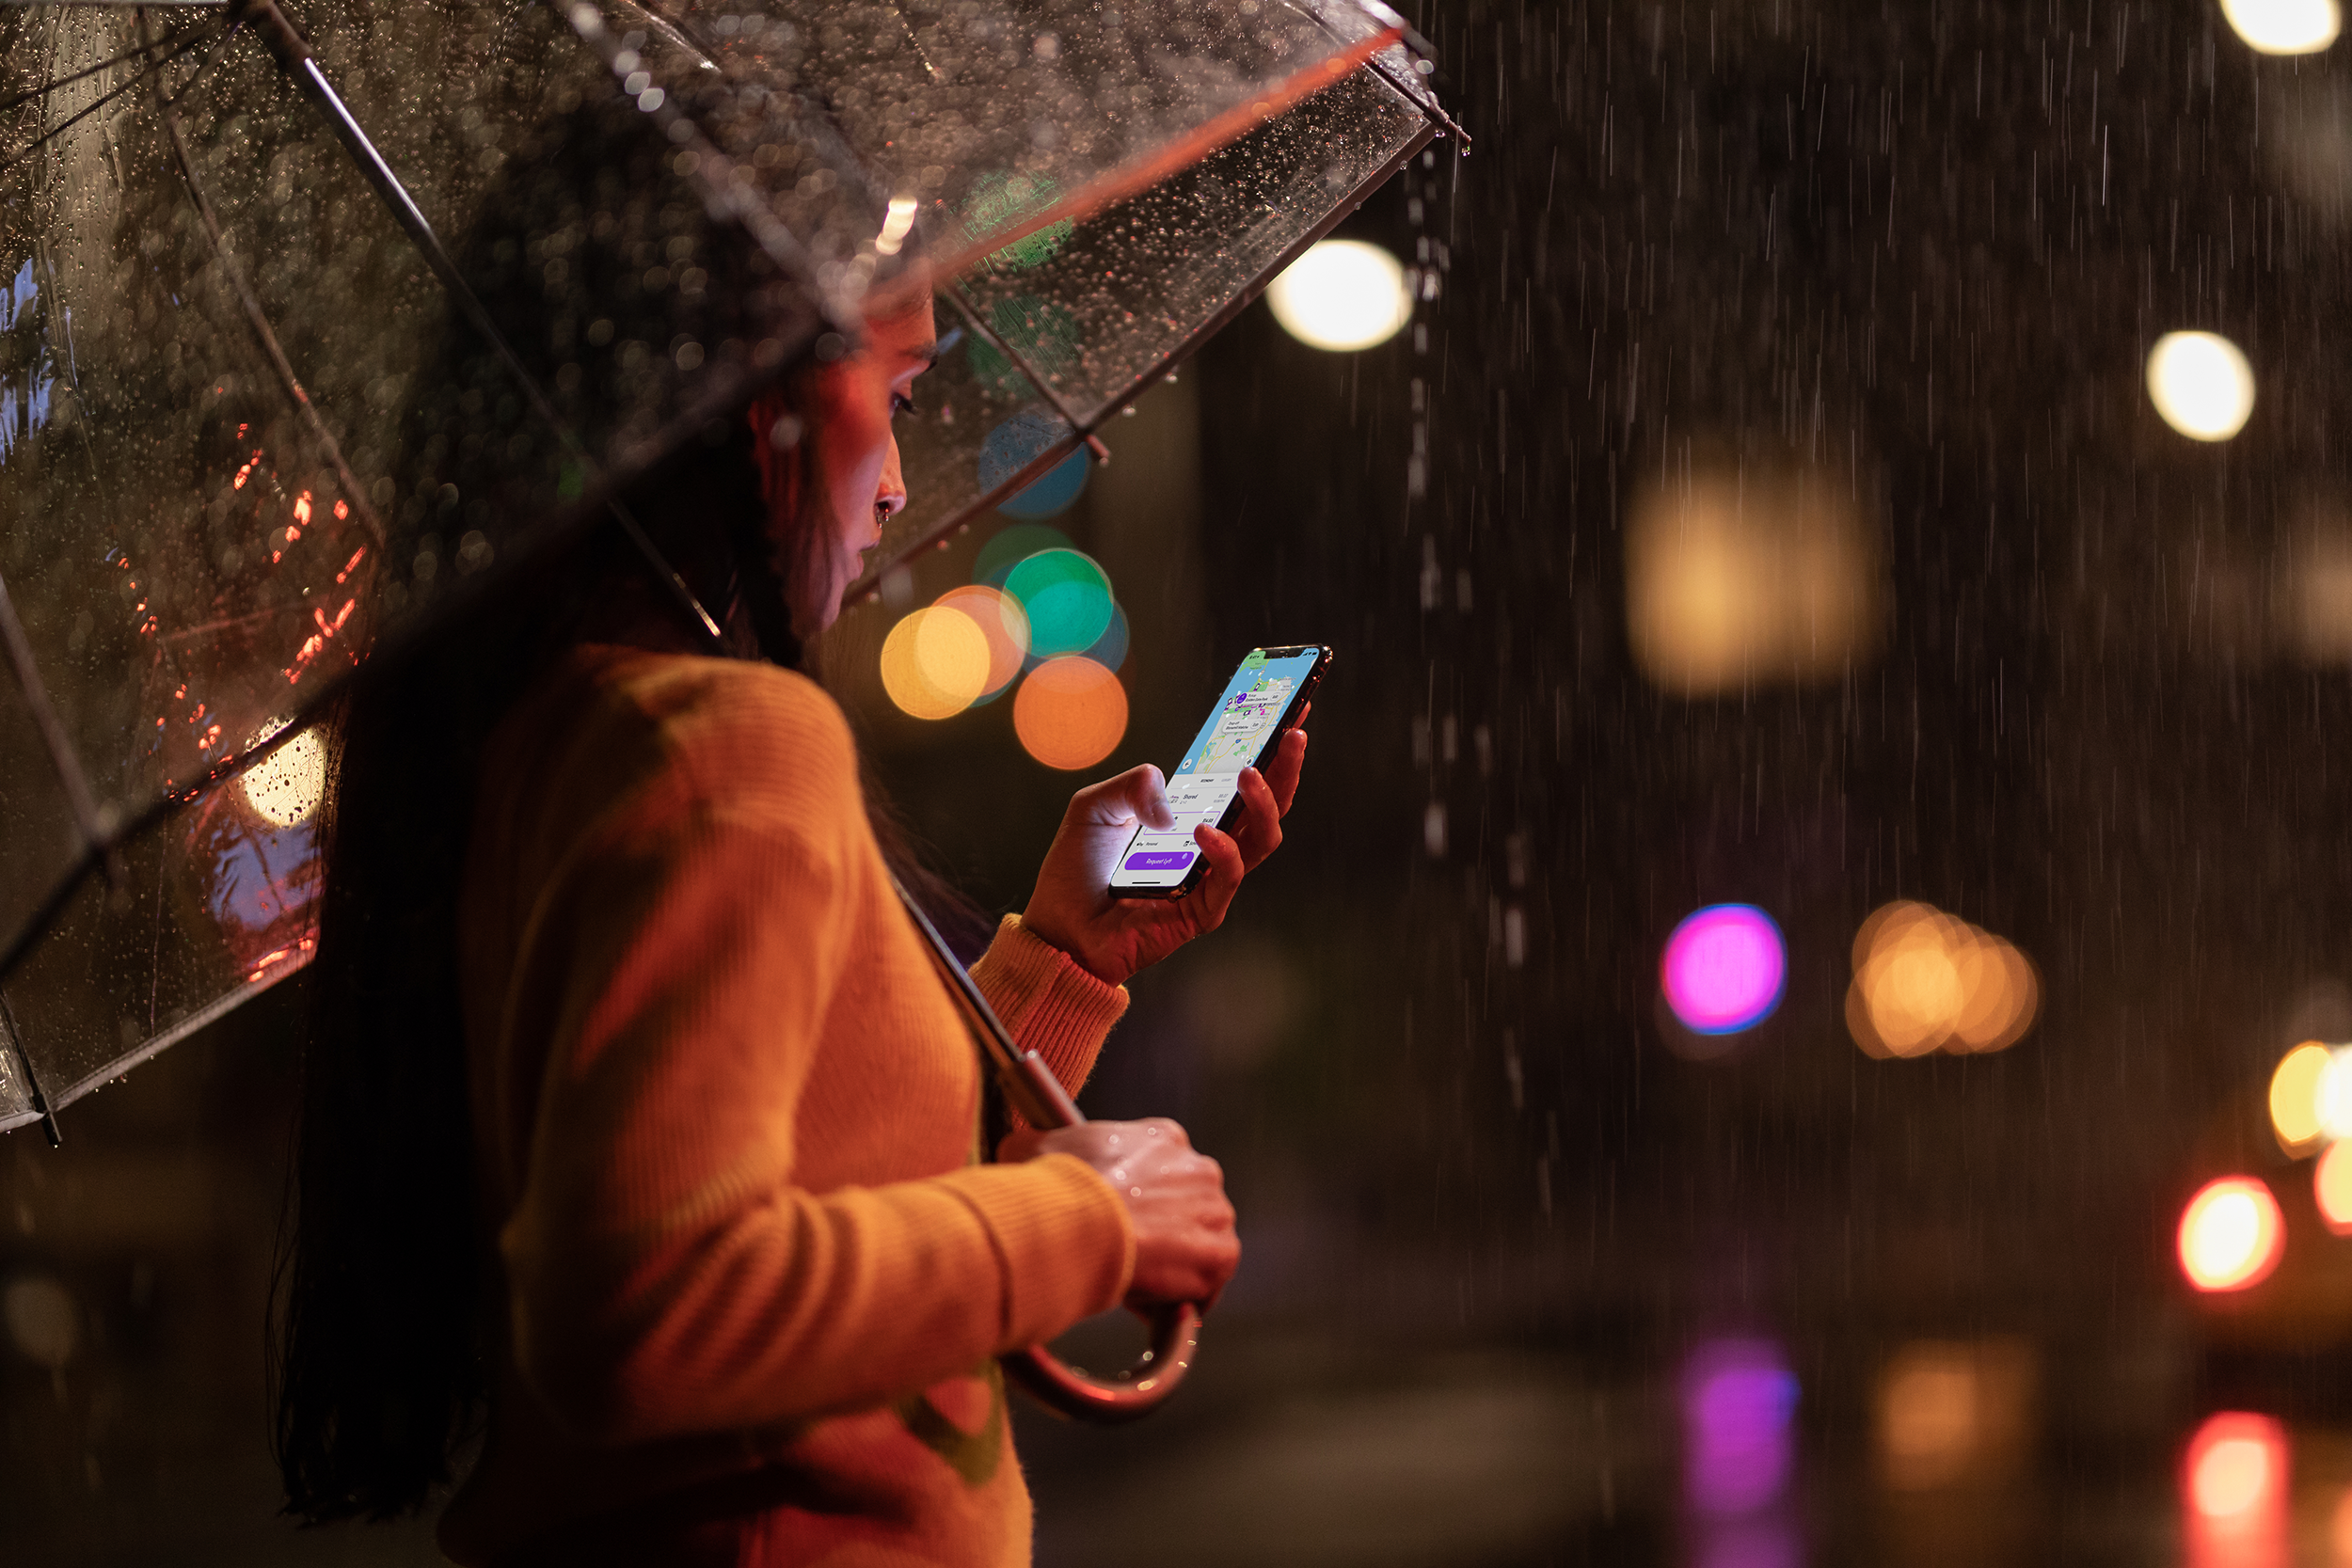 Opinion: Once the iPhone was the cameraphone to beat – now it's playing catch-up…